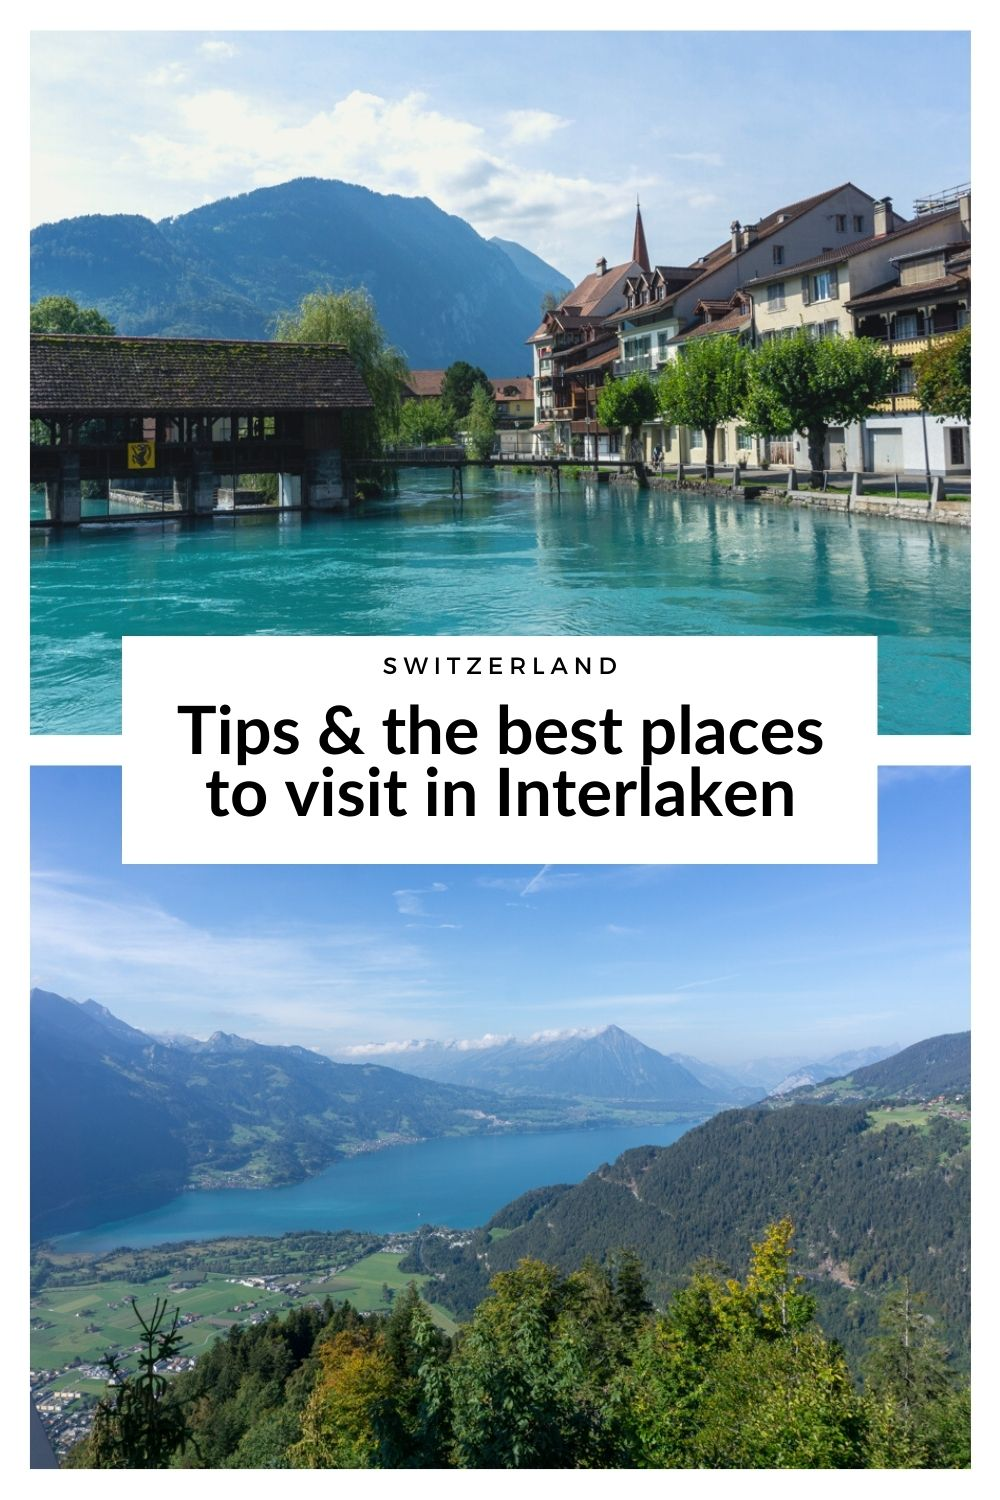 Tips and the best places to visit in Interlaken - Switzerland